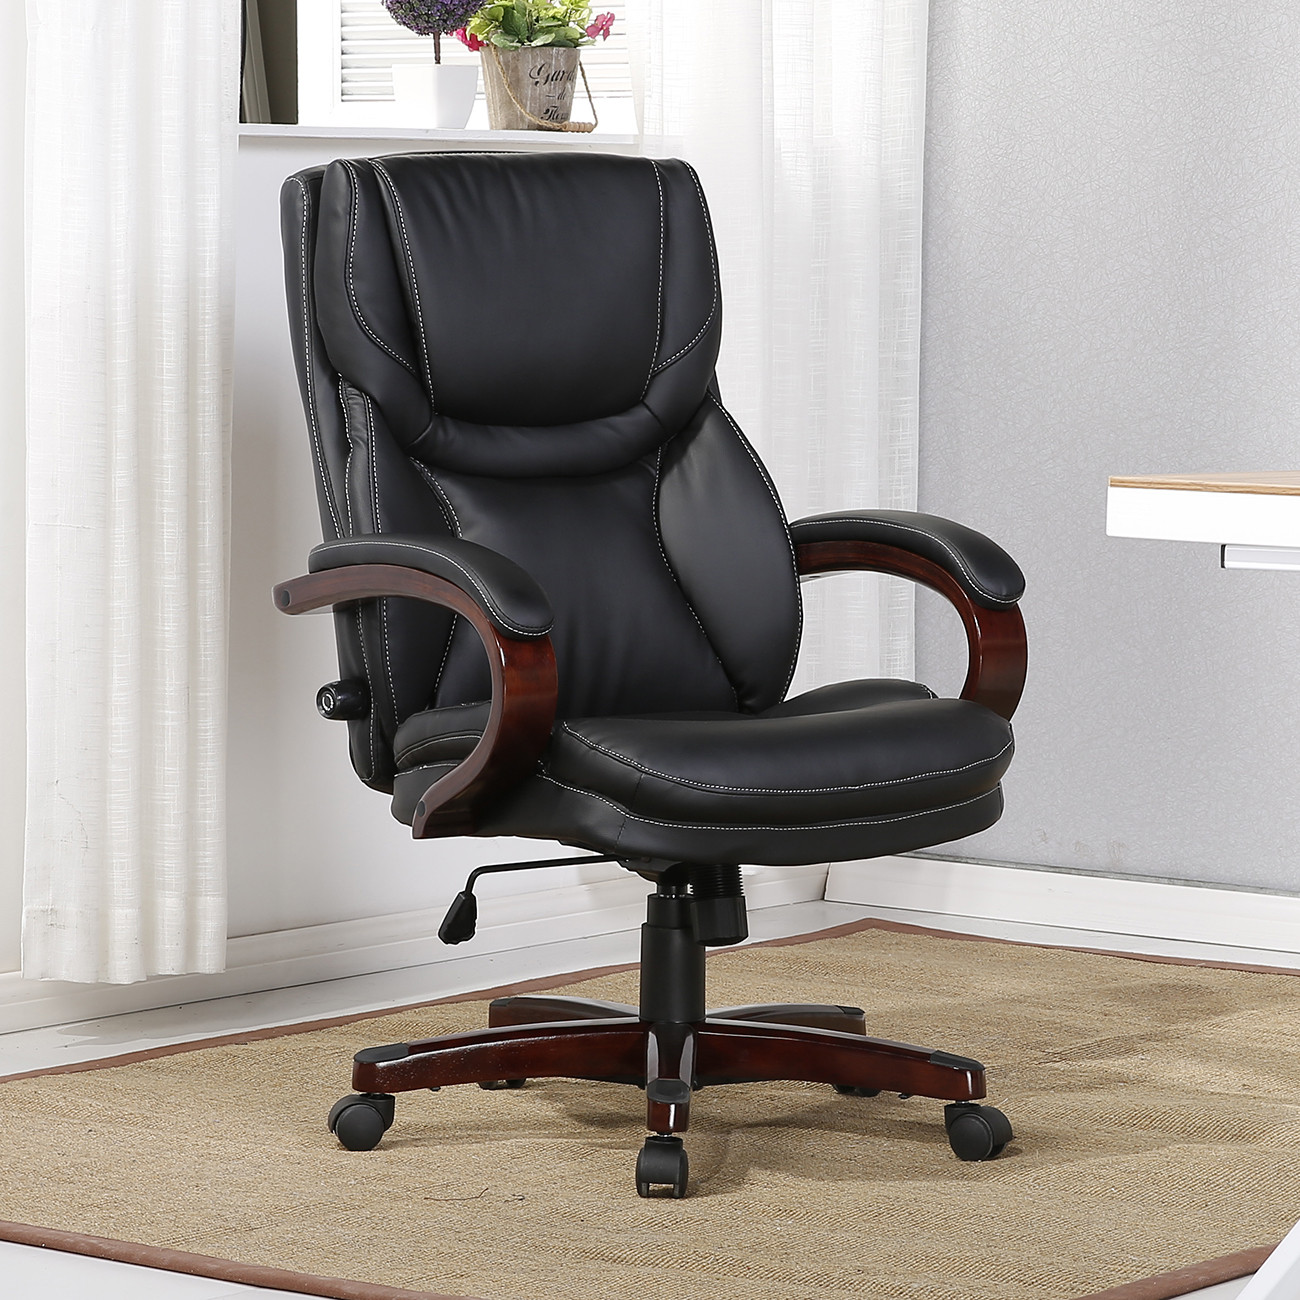 Best ideas about Office Chair Lumbar Support . Save or Pin Executive Chair High Back fice Desk Arm Lumbar Support Now.